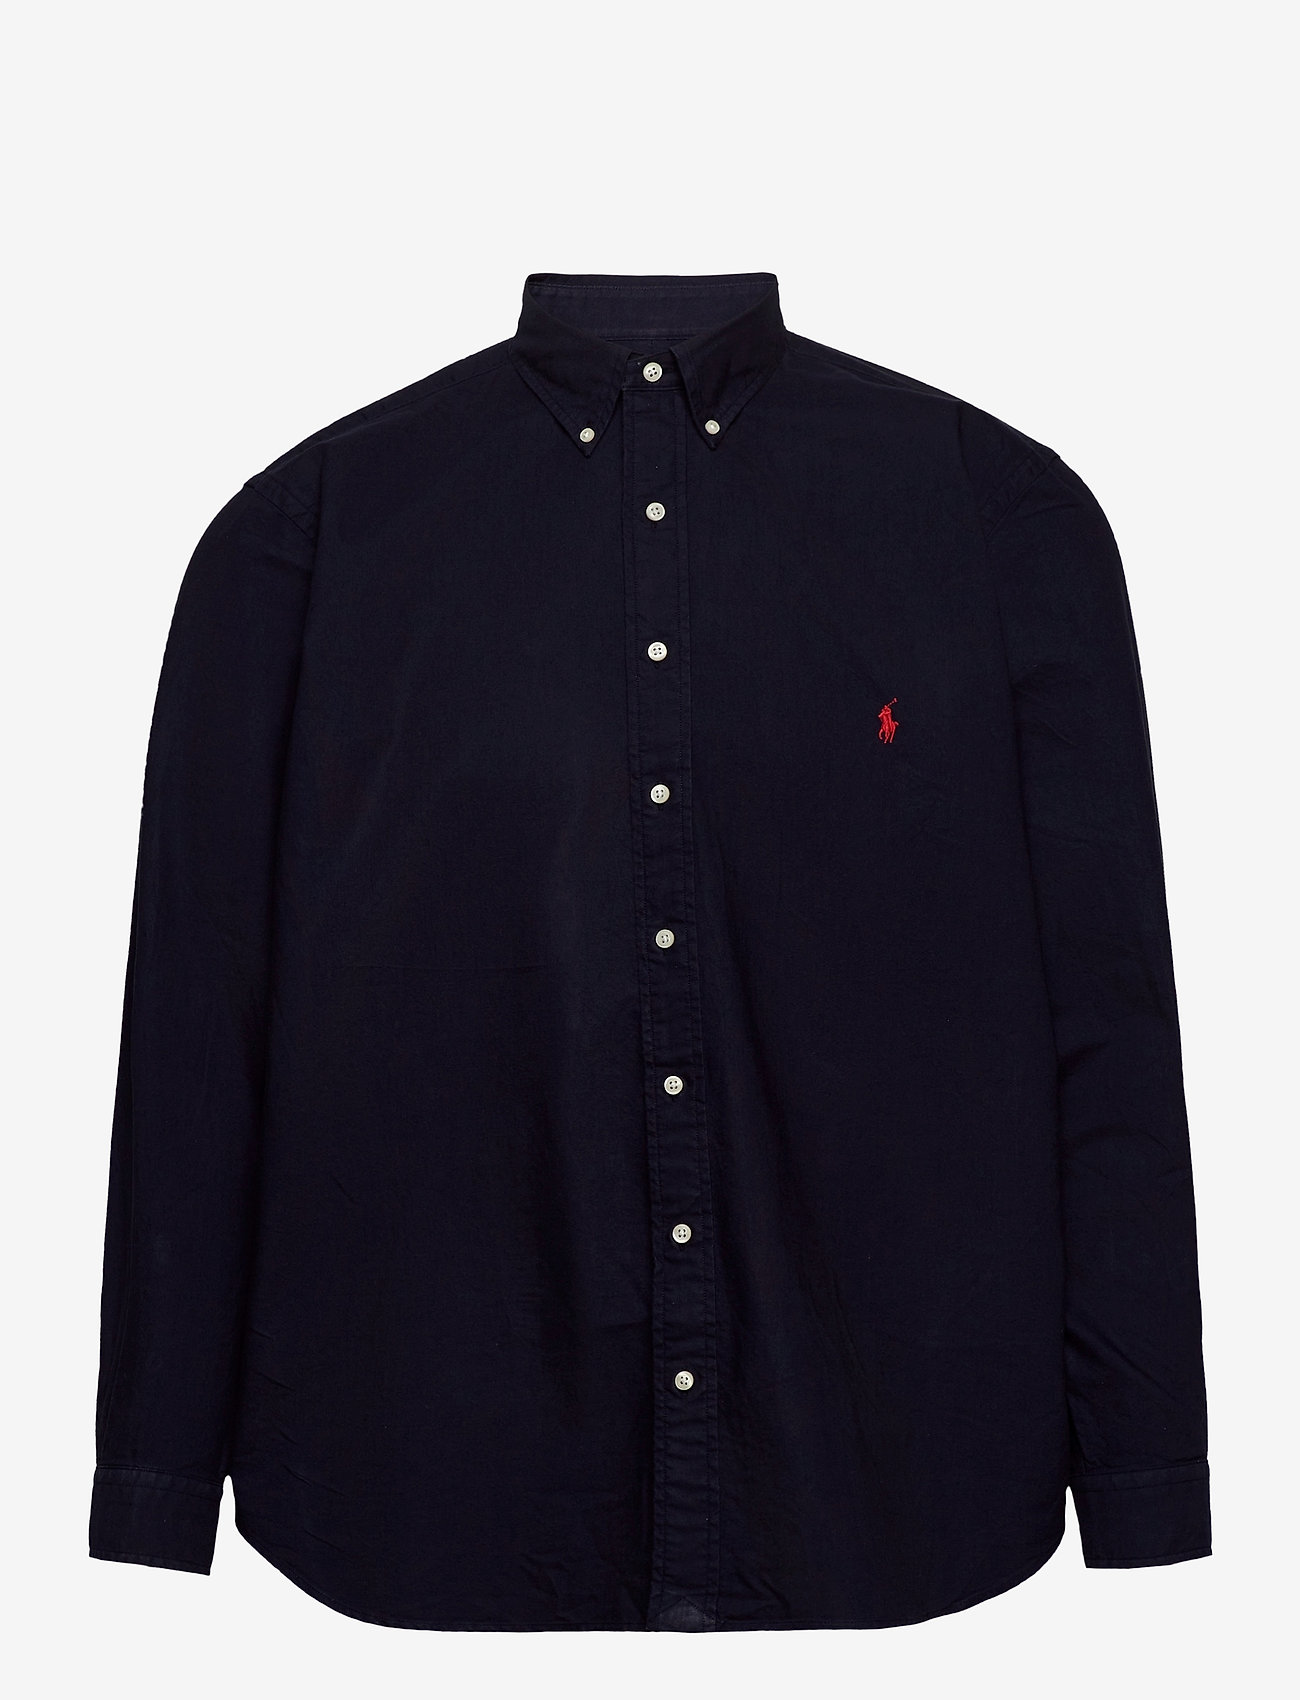 Polo Ralph Lauren Big & Tall - Classic Fit Oxford Shirt - business shirts - rl navy - 1